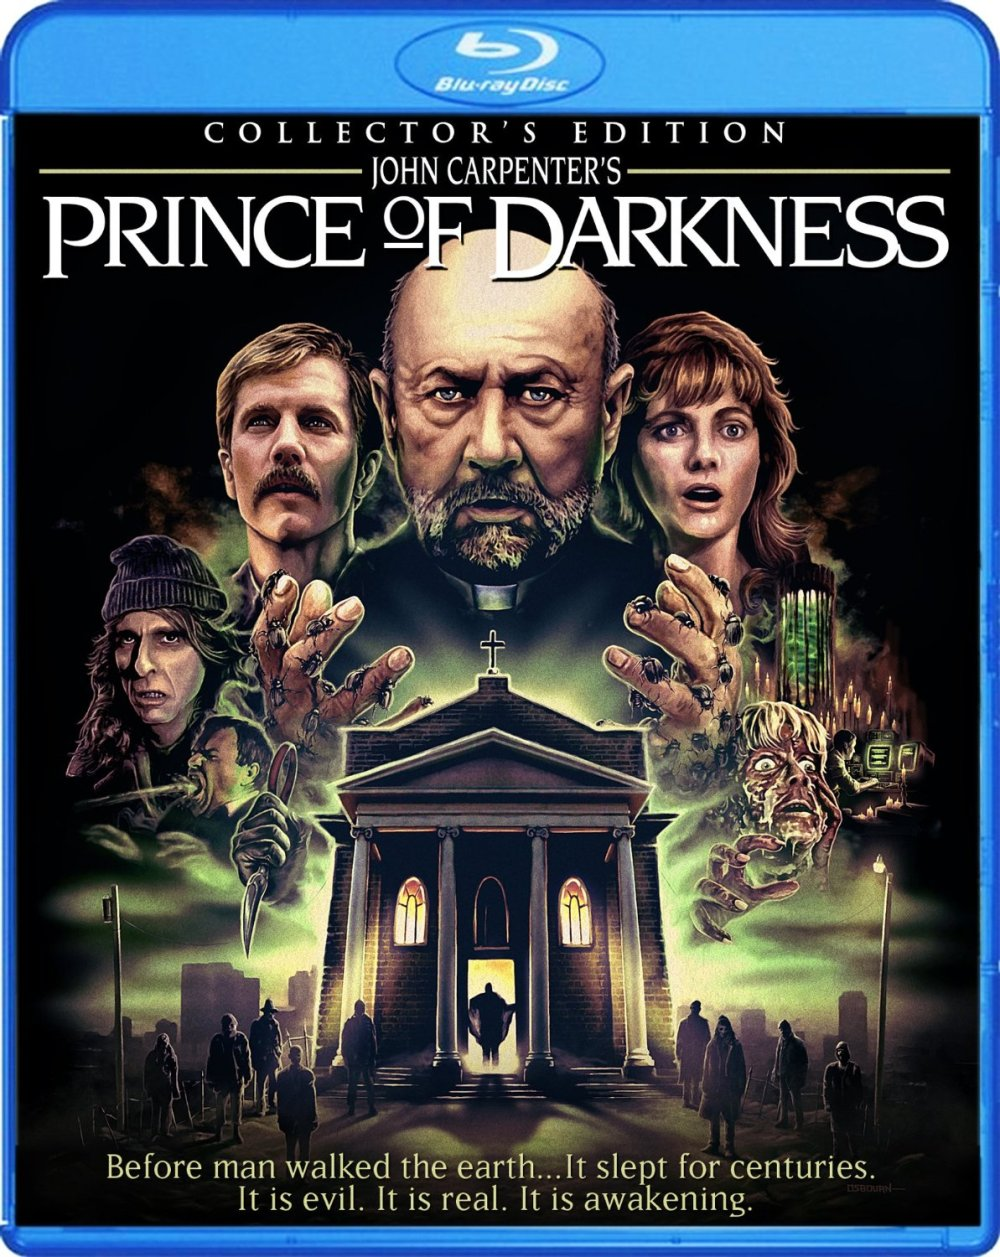 Prince of Darkness blu-ray poster